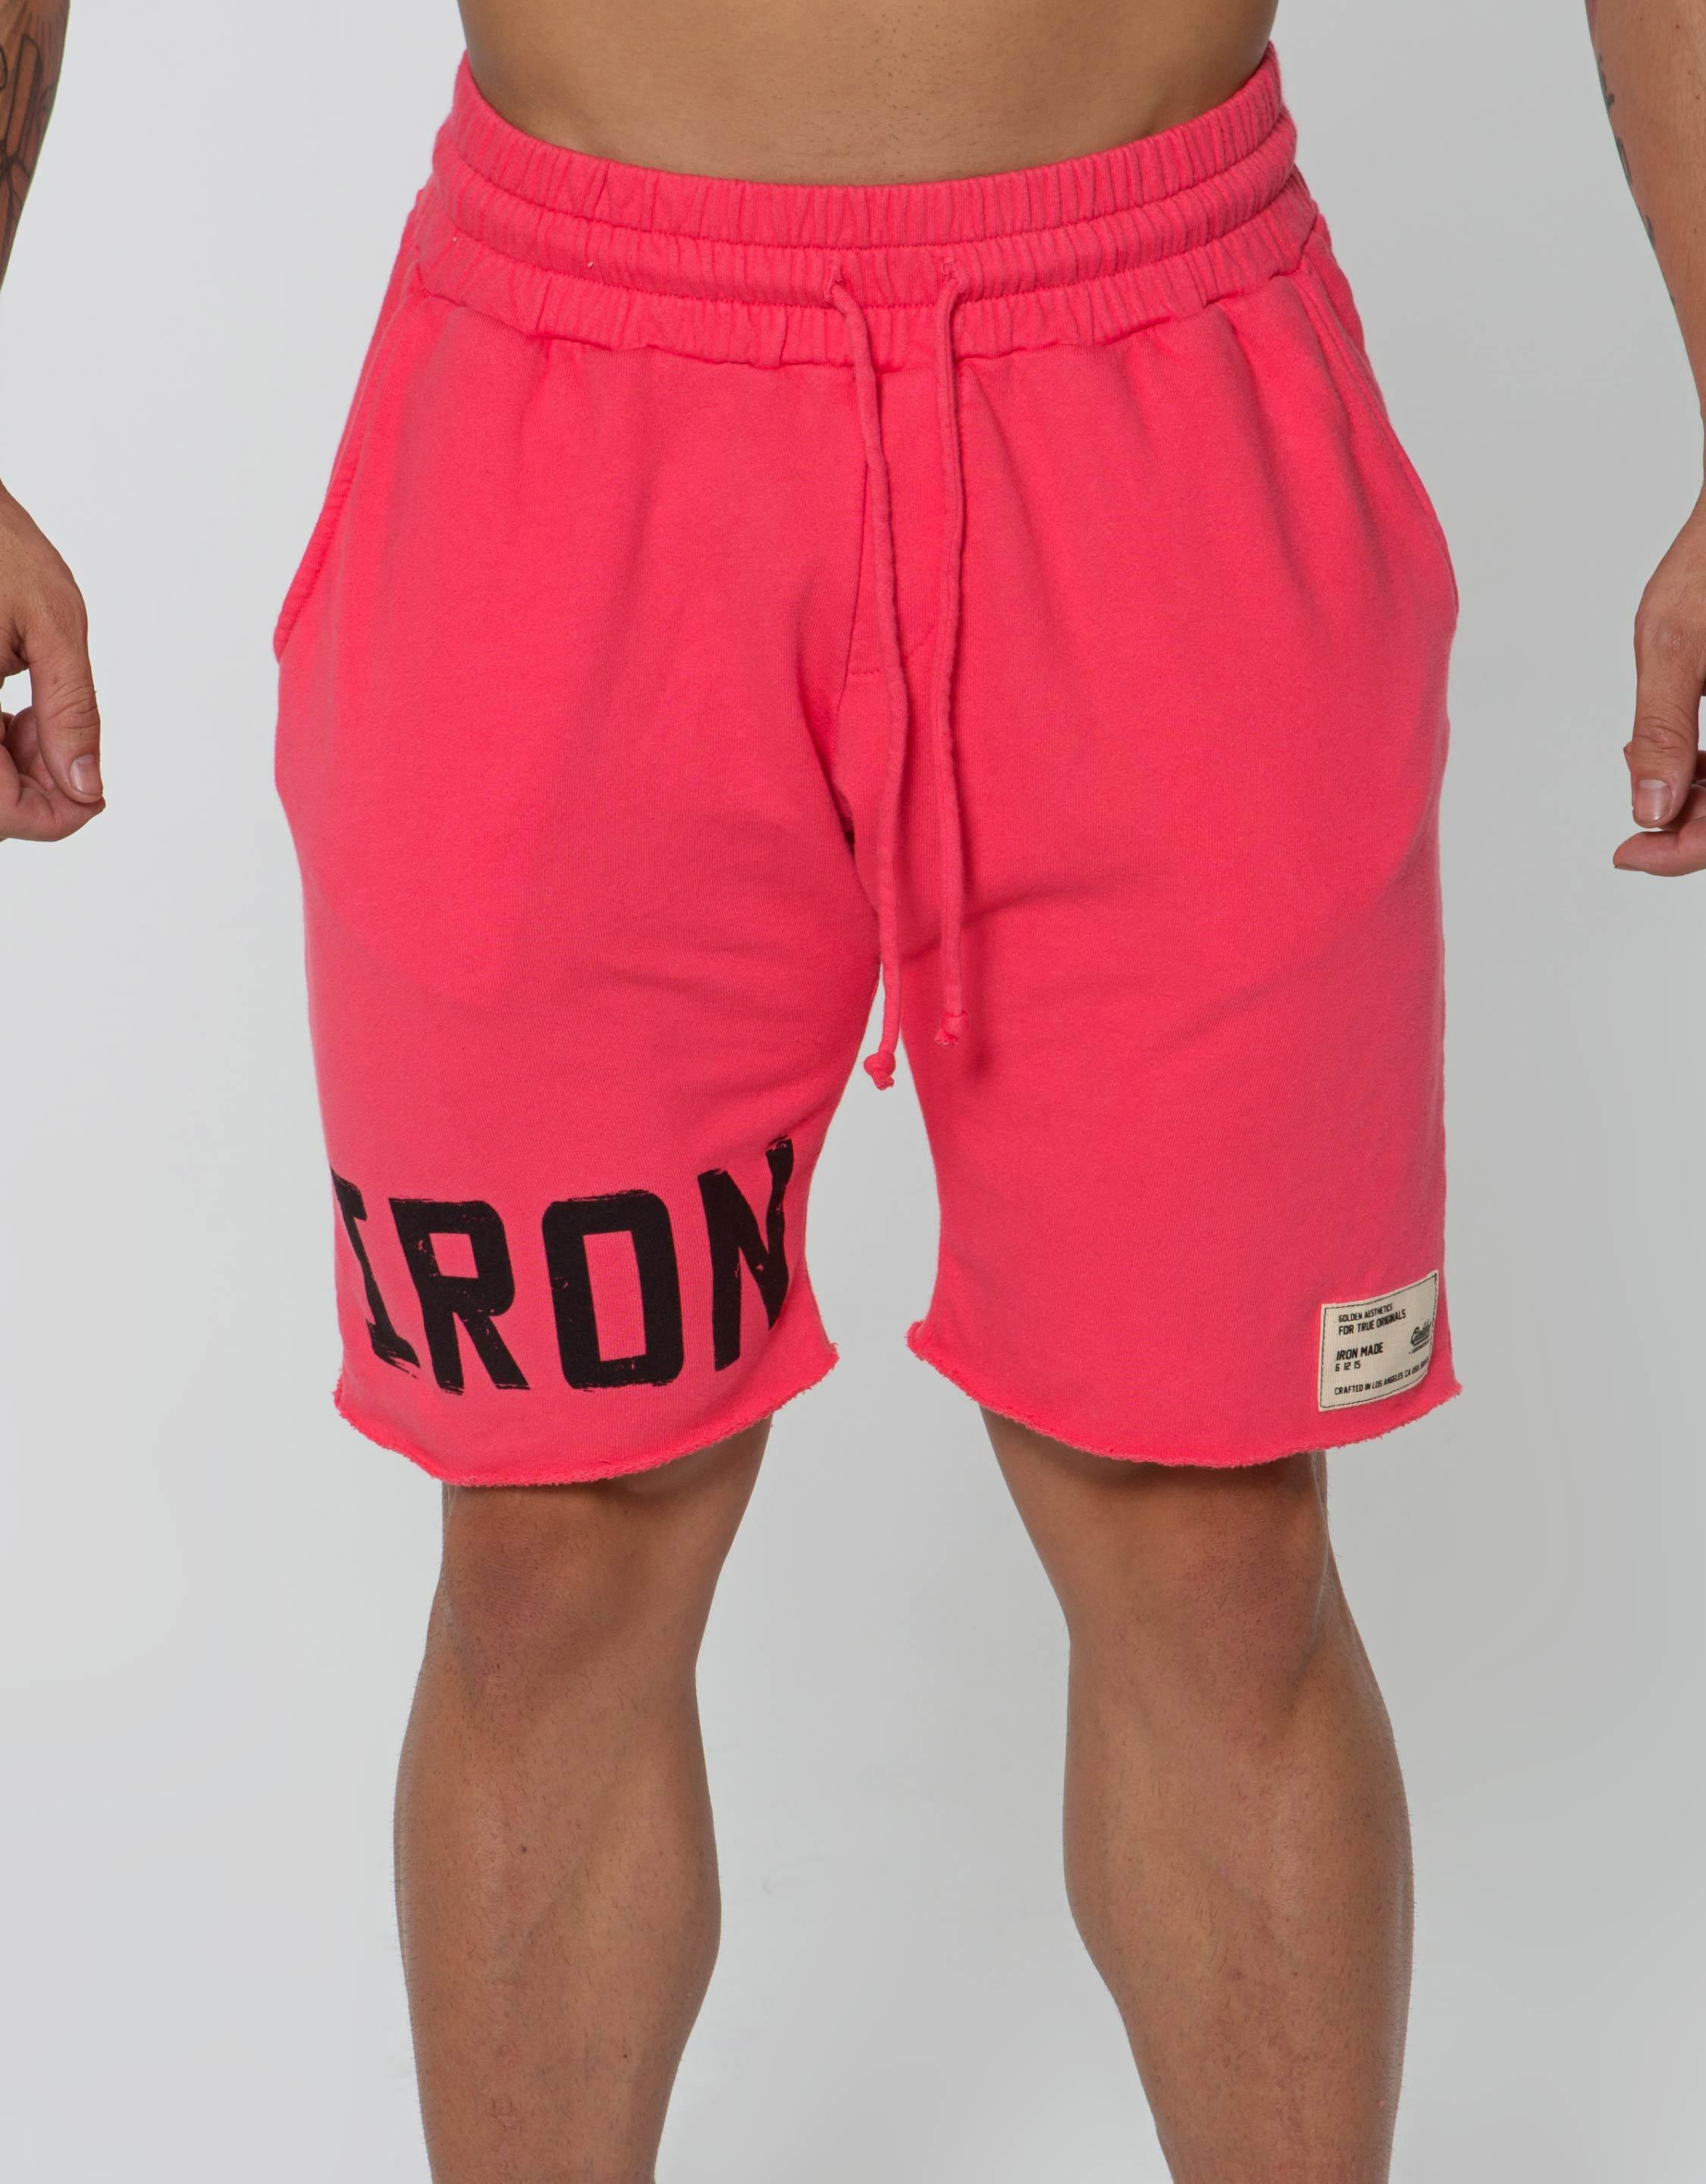 Iron Raw Shorts - Faded Red - Shorts